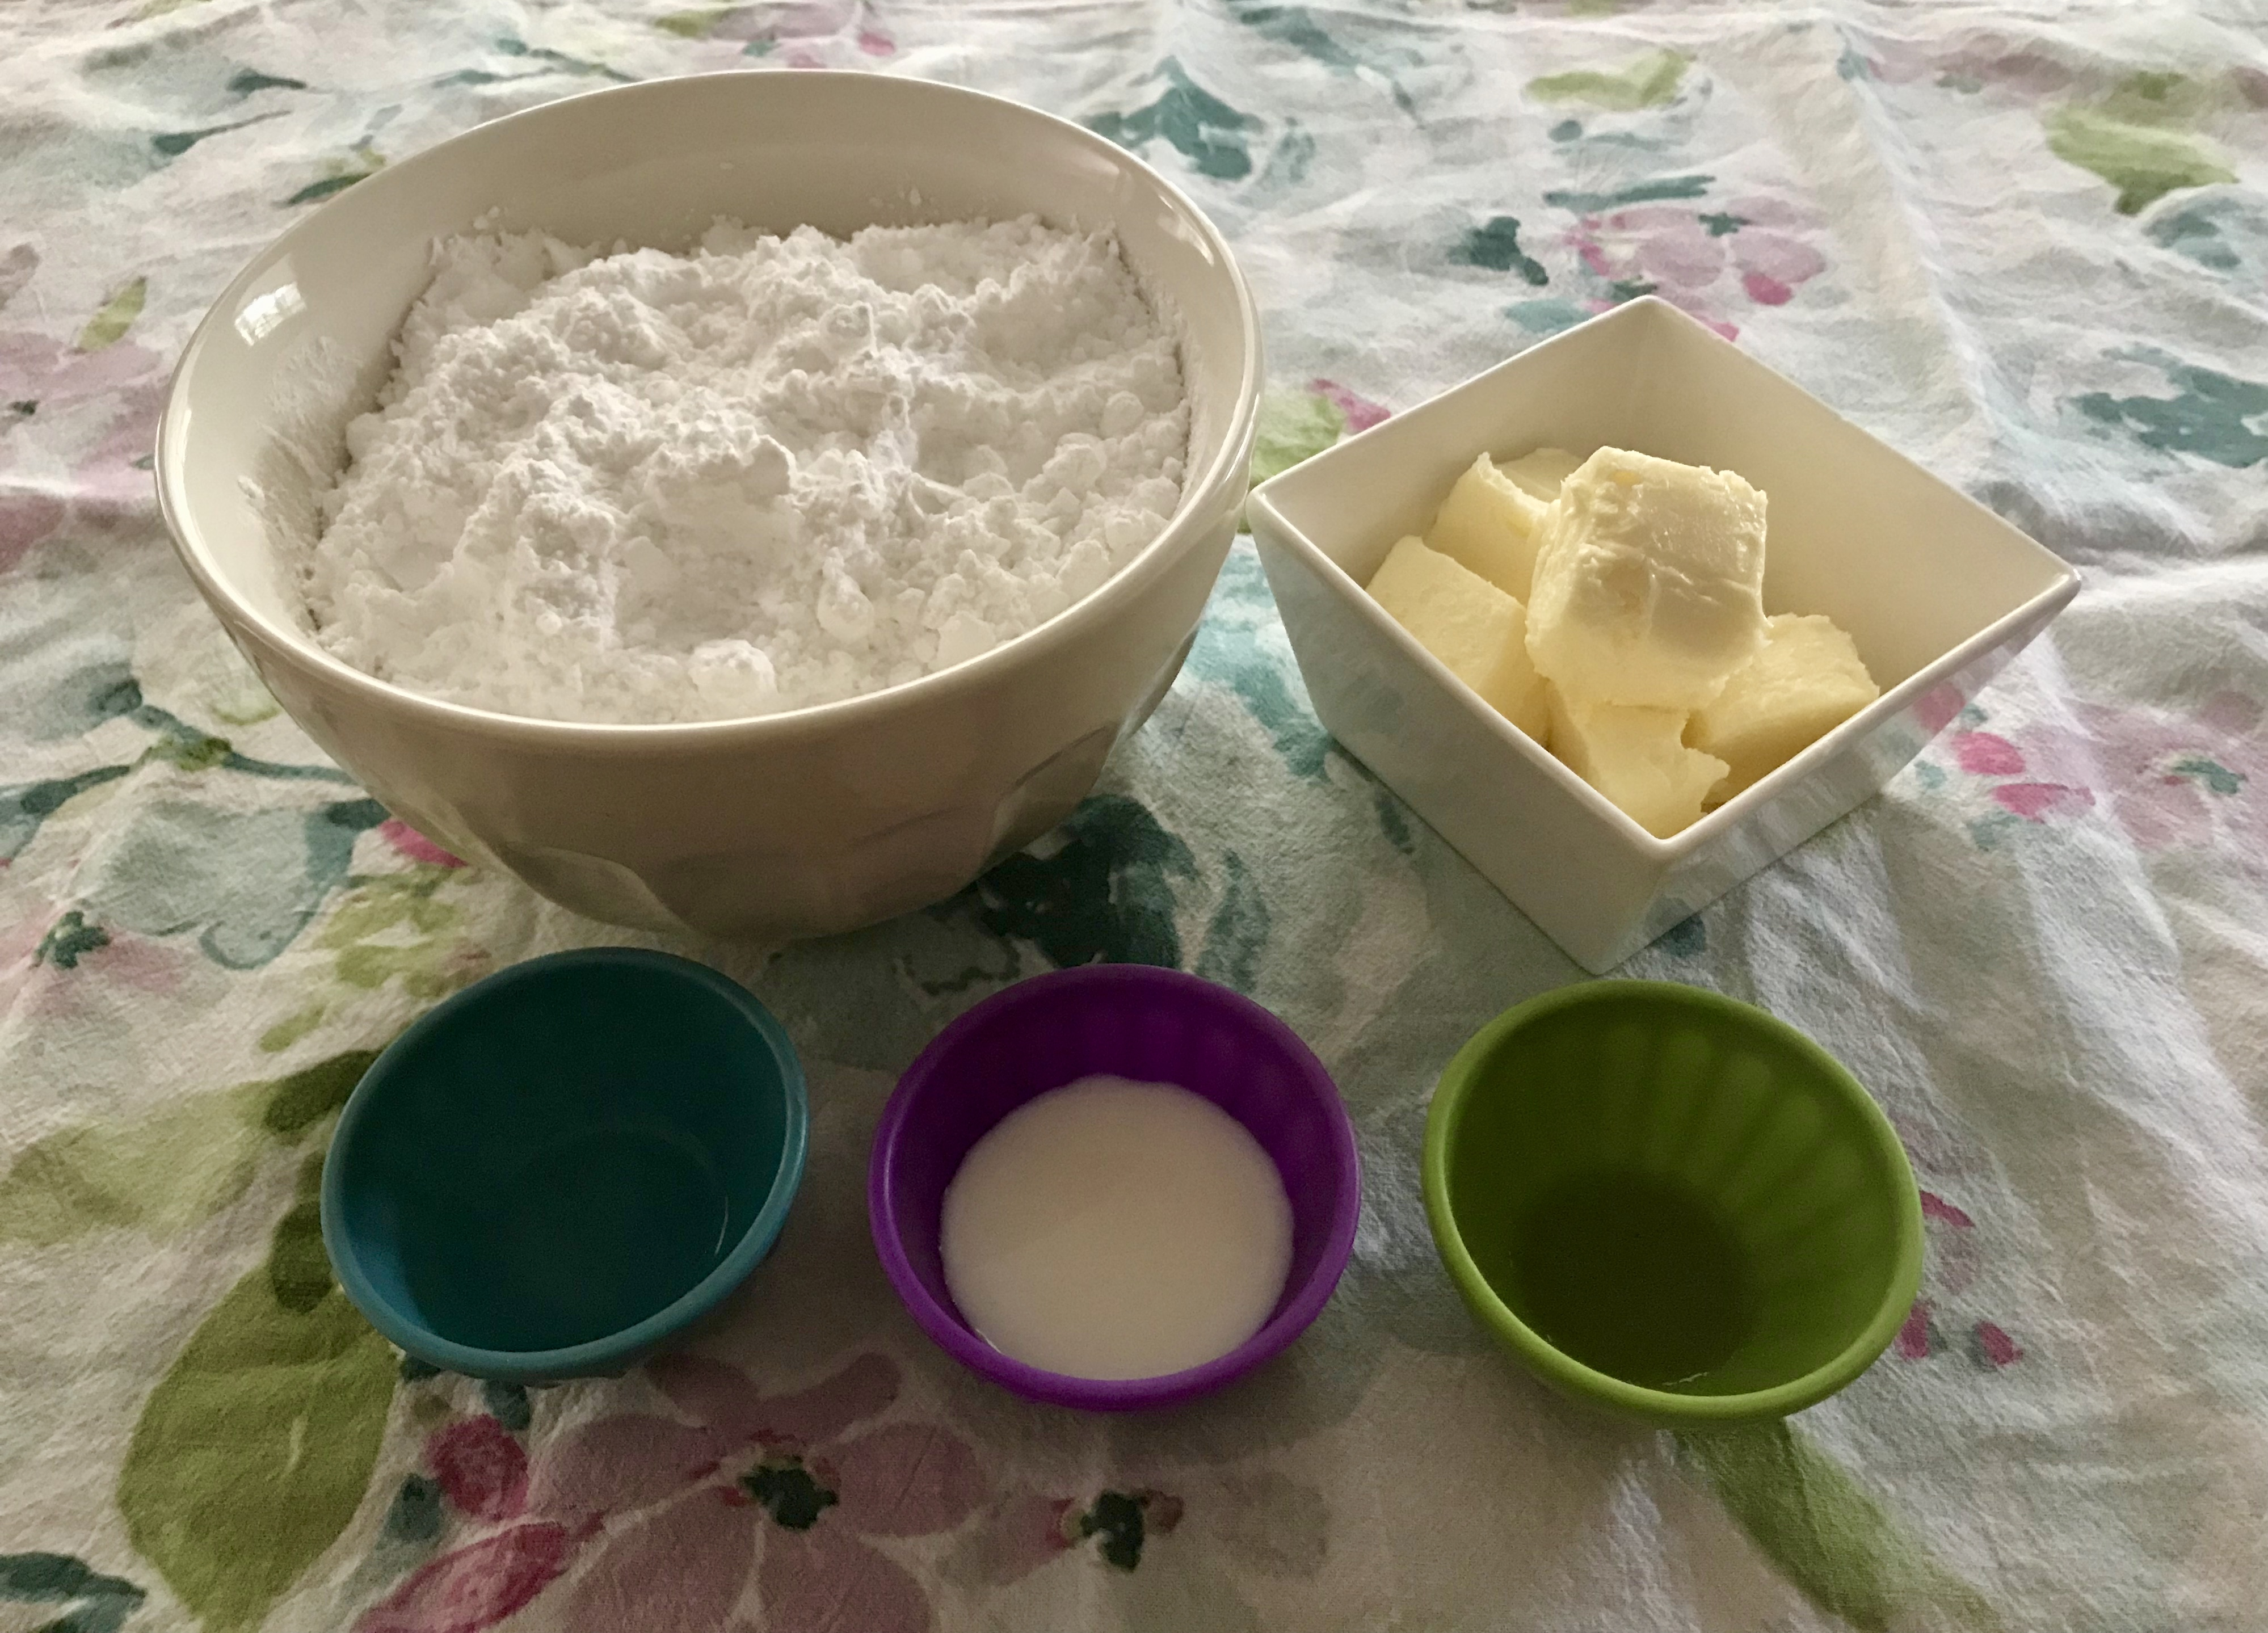 Ingredients for Butter Mints: sugar, butter, milk, vanilla, peppermint extract